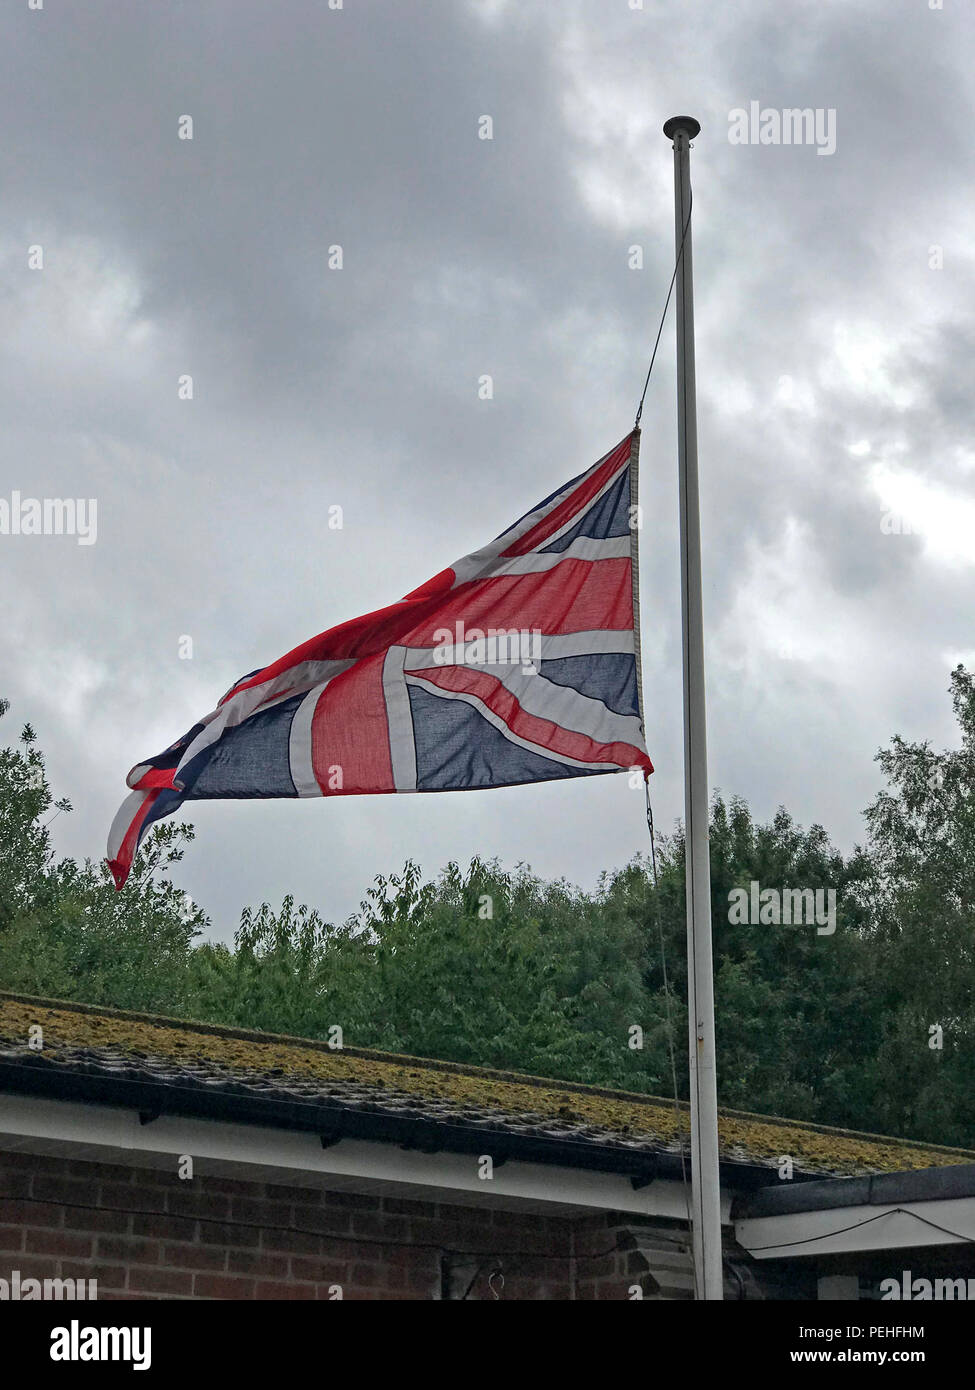 Union Flag, Union Jack at half-mast denoting a death, at Grappenhall & Thelwall British legion, Warrington, Cheshire, North West England, UK - Stock Image